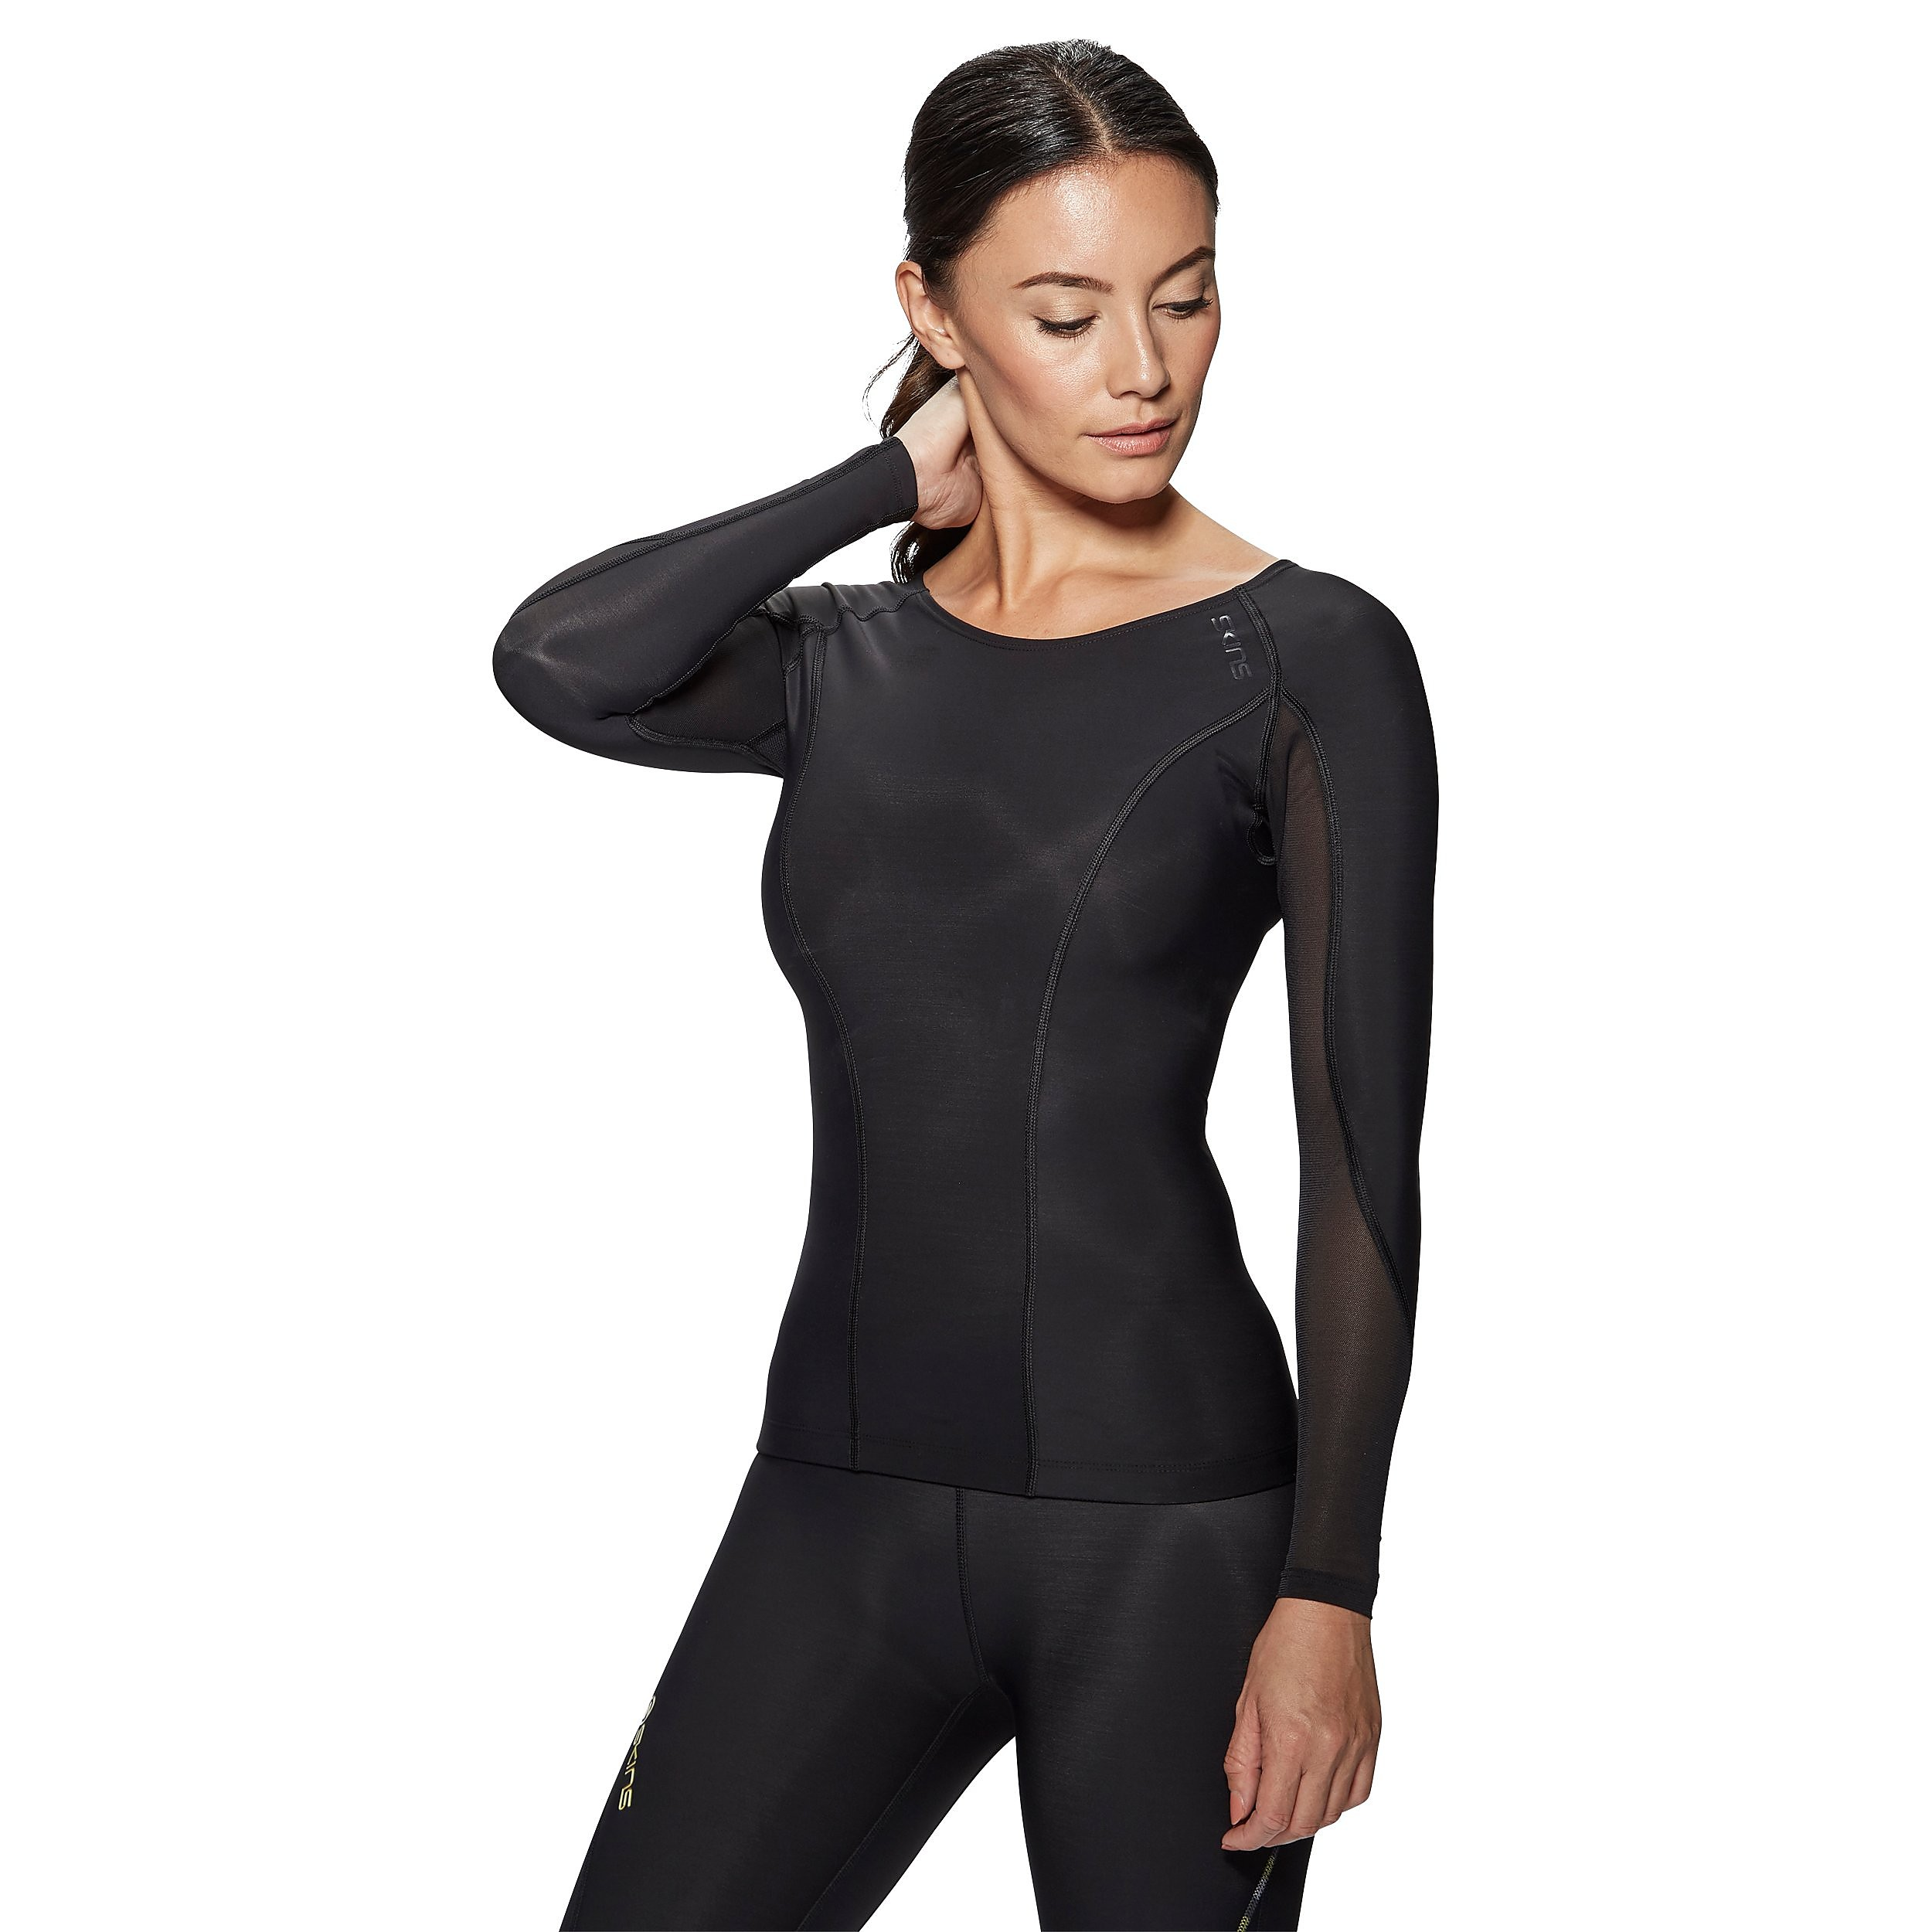 Skins DNAmic Women's Long Sleeve Top